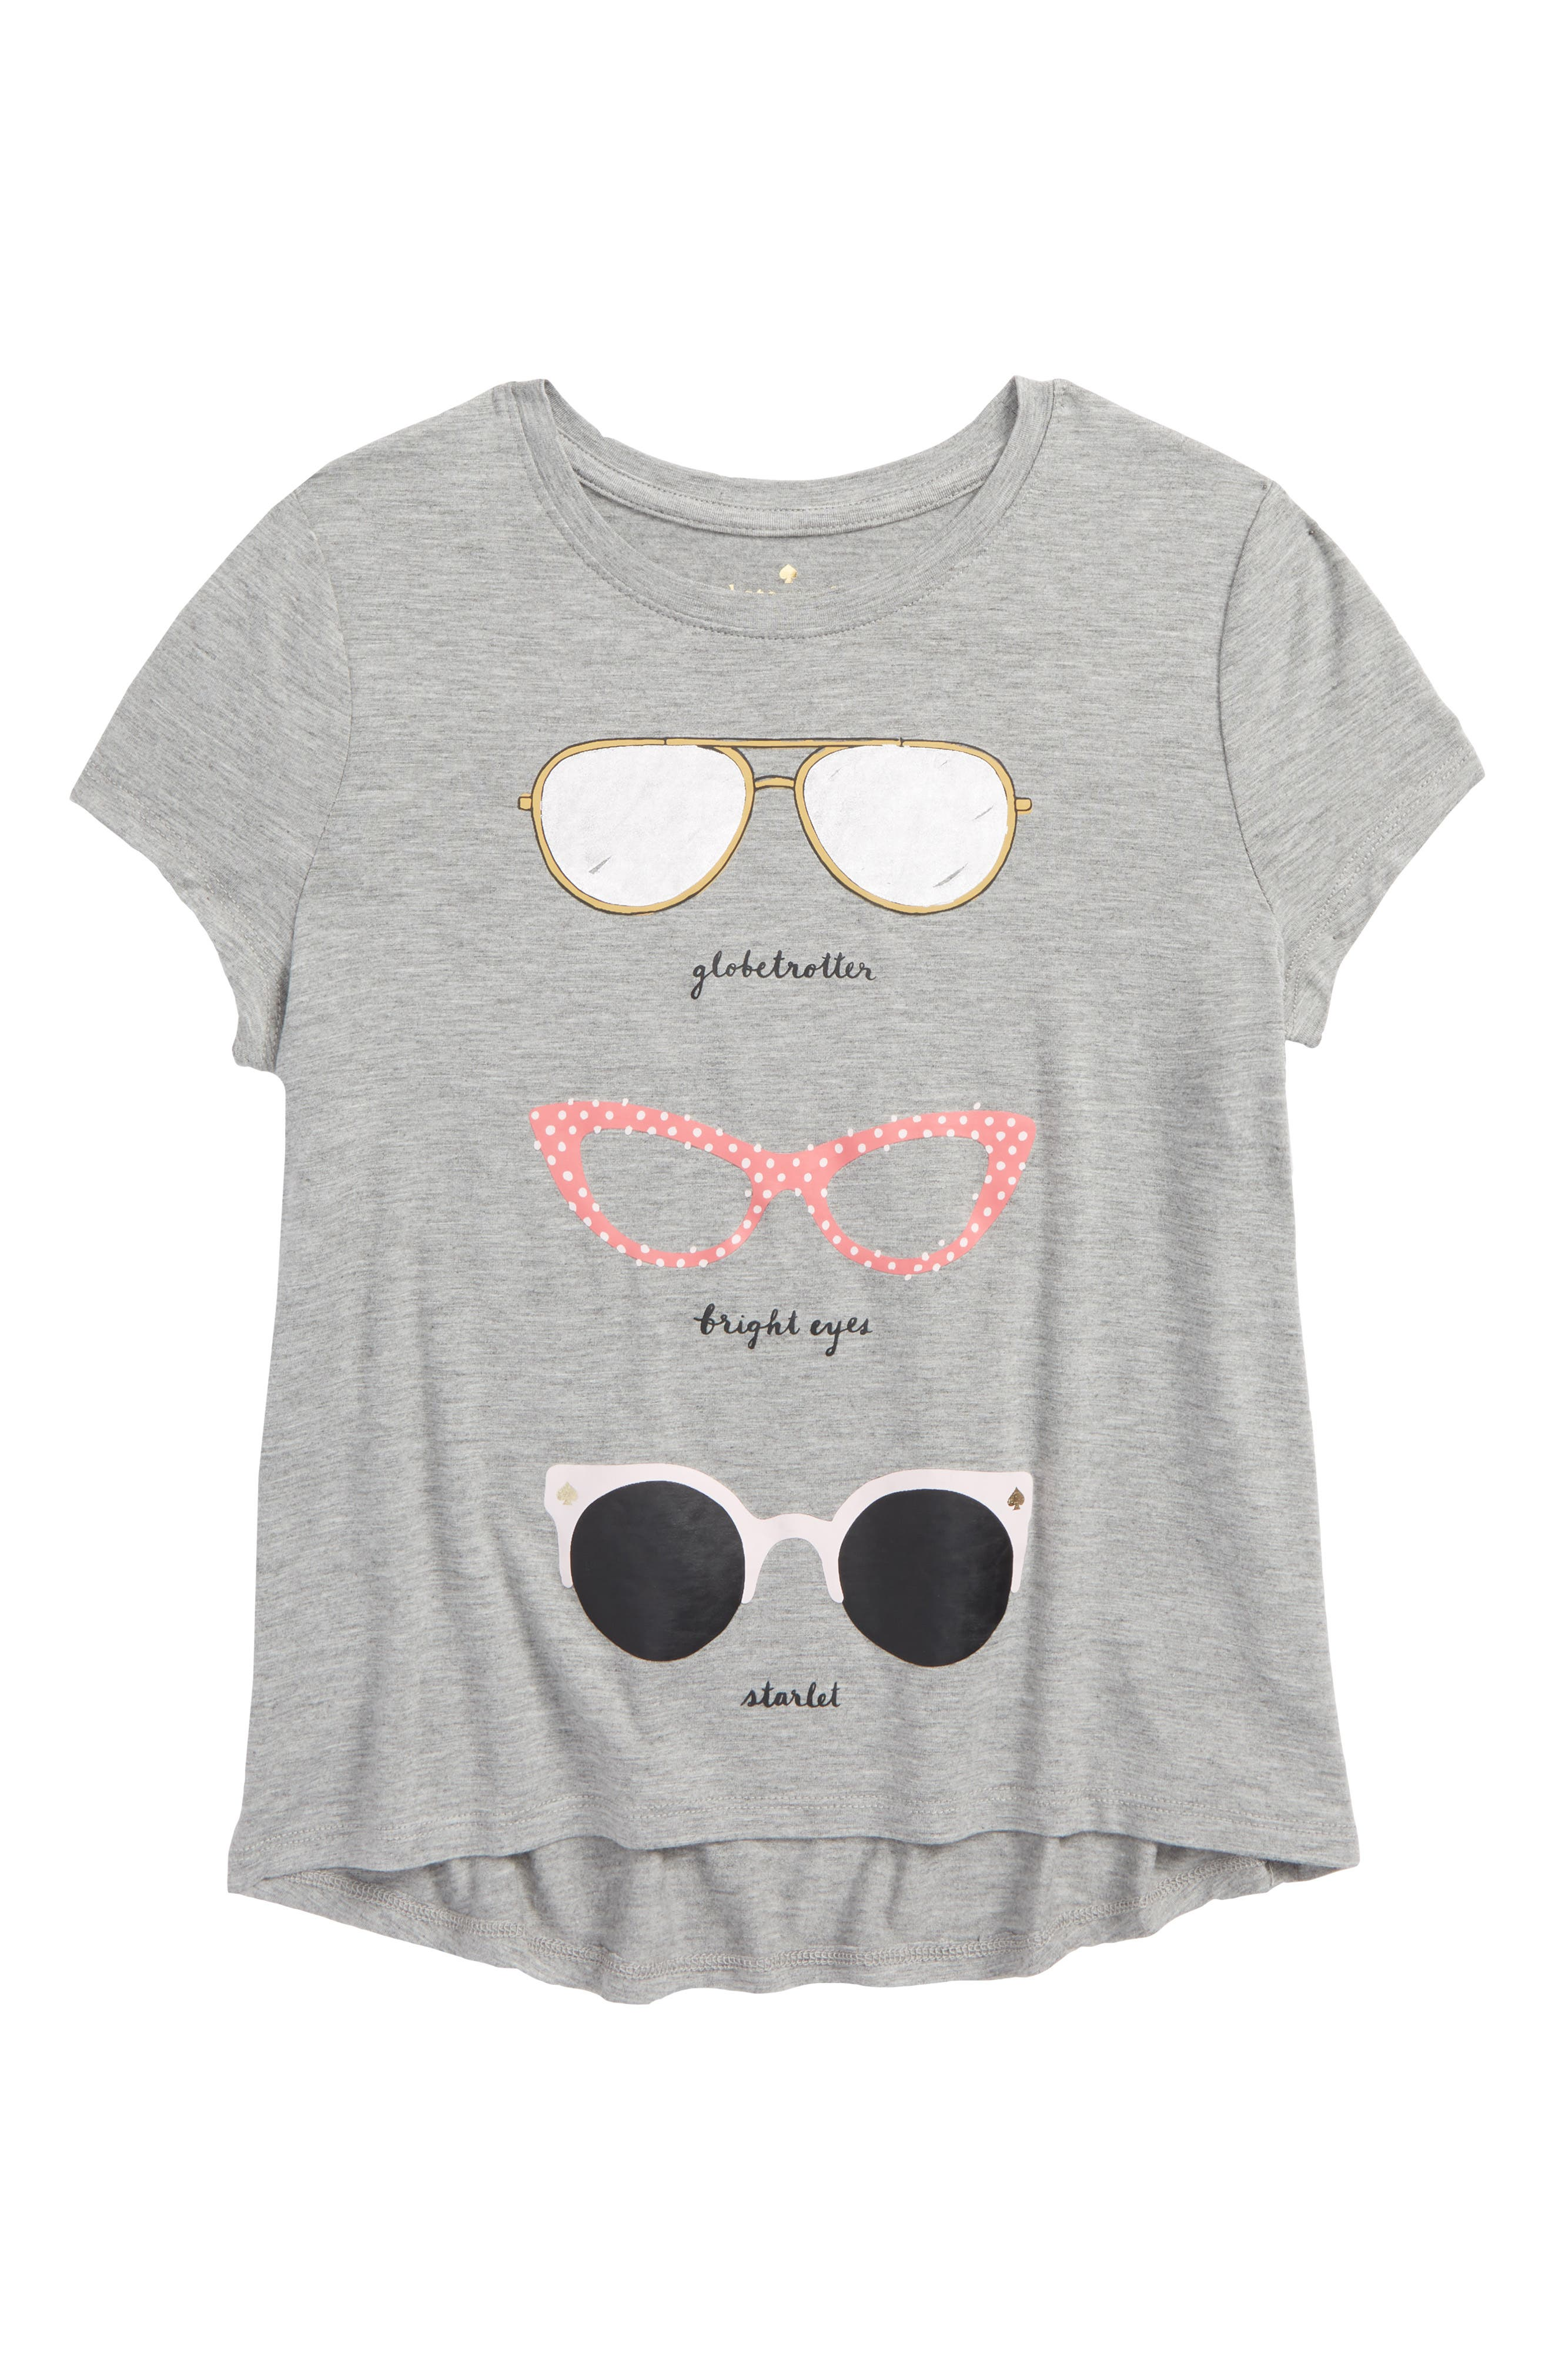 sunglasses graphic tee,                             Main thumbnail 1, color,                             Heather Grey